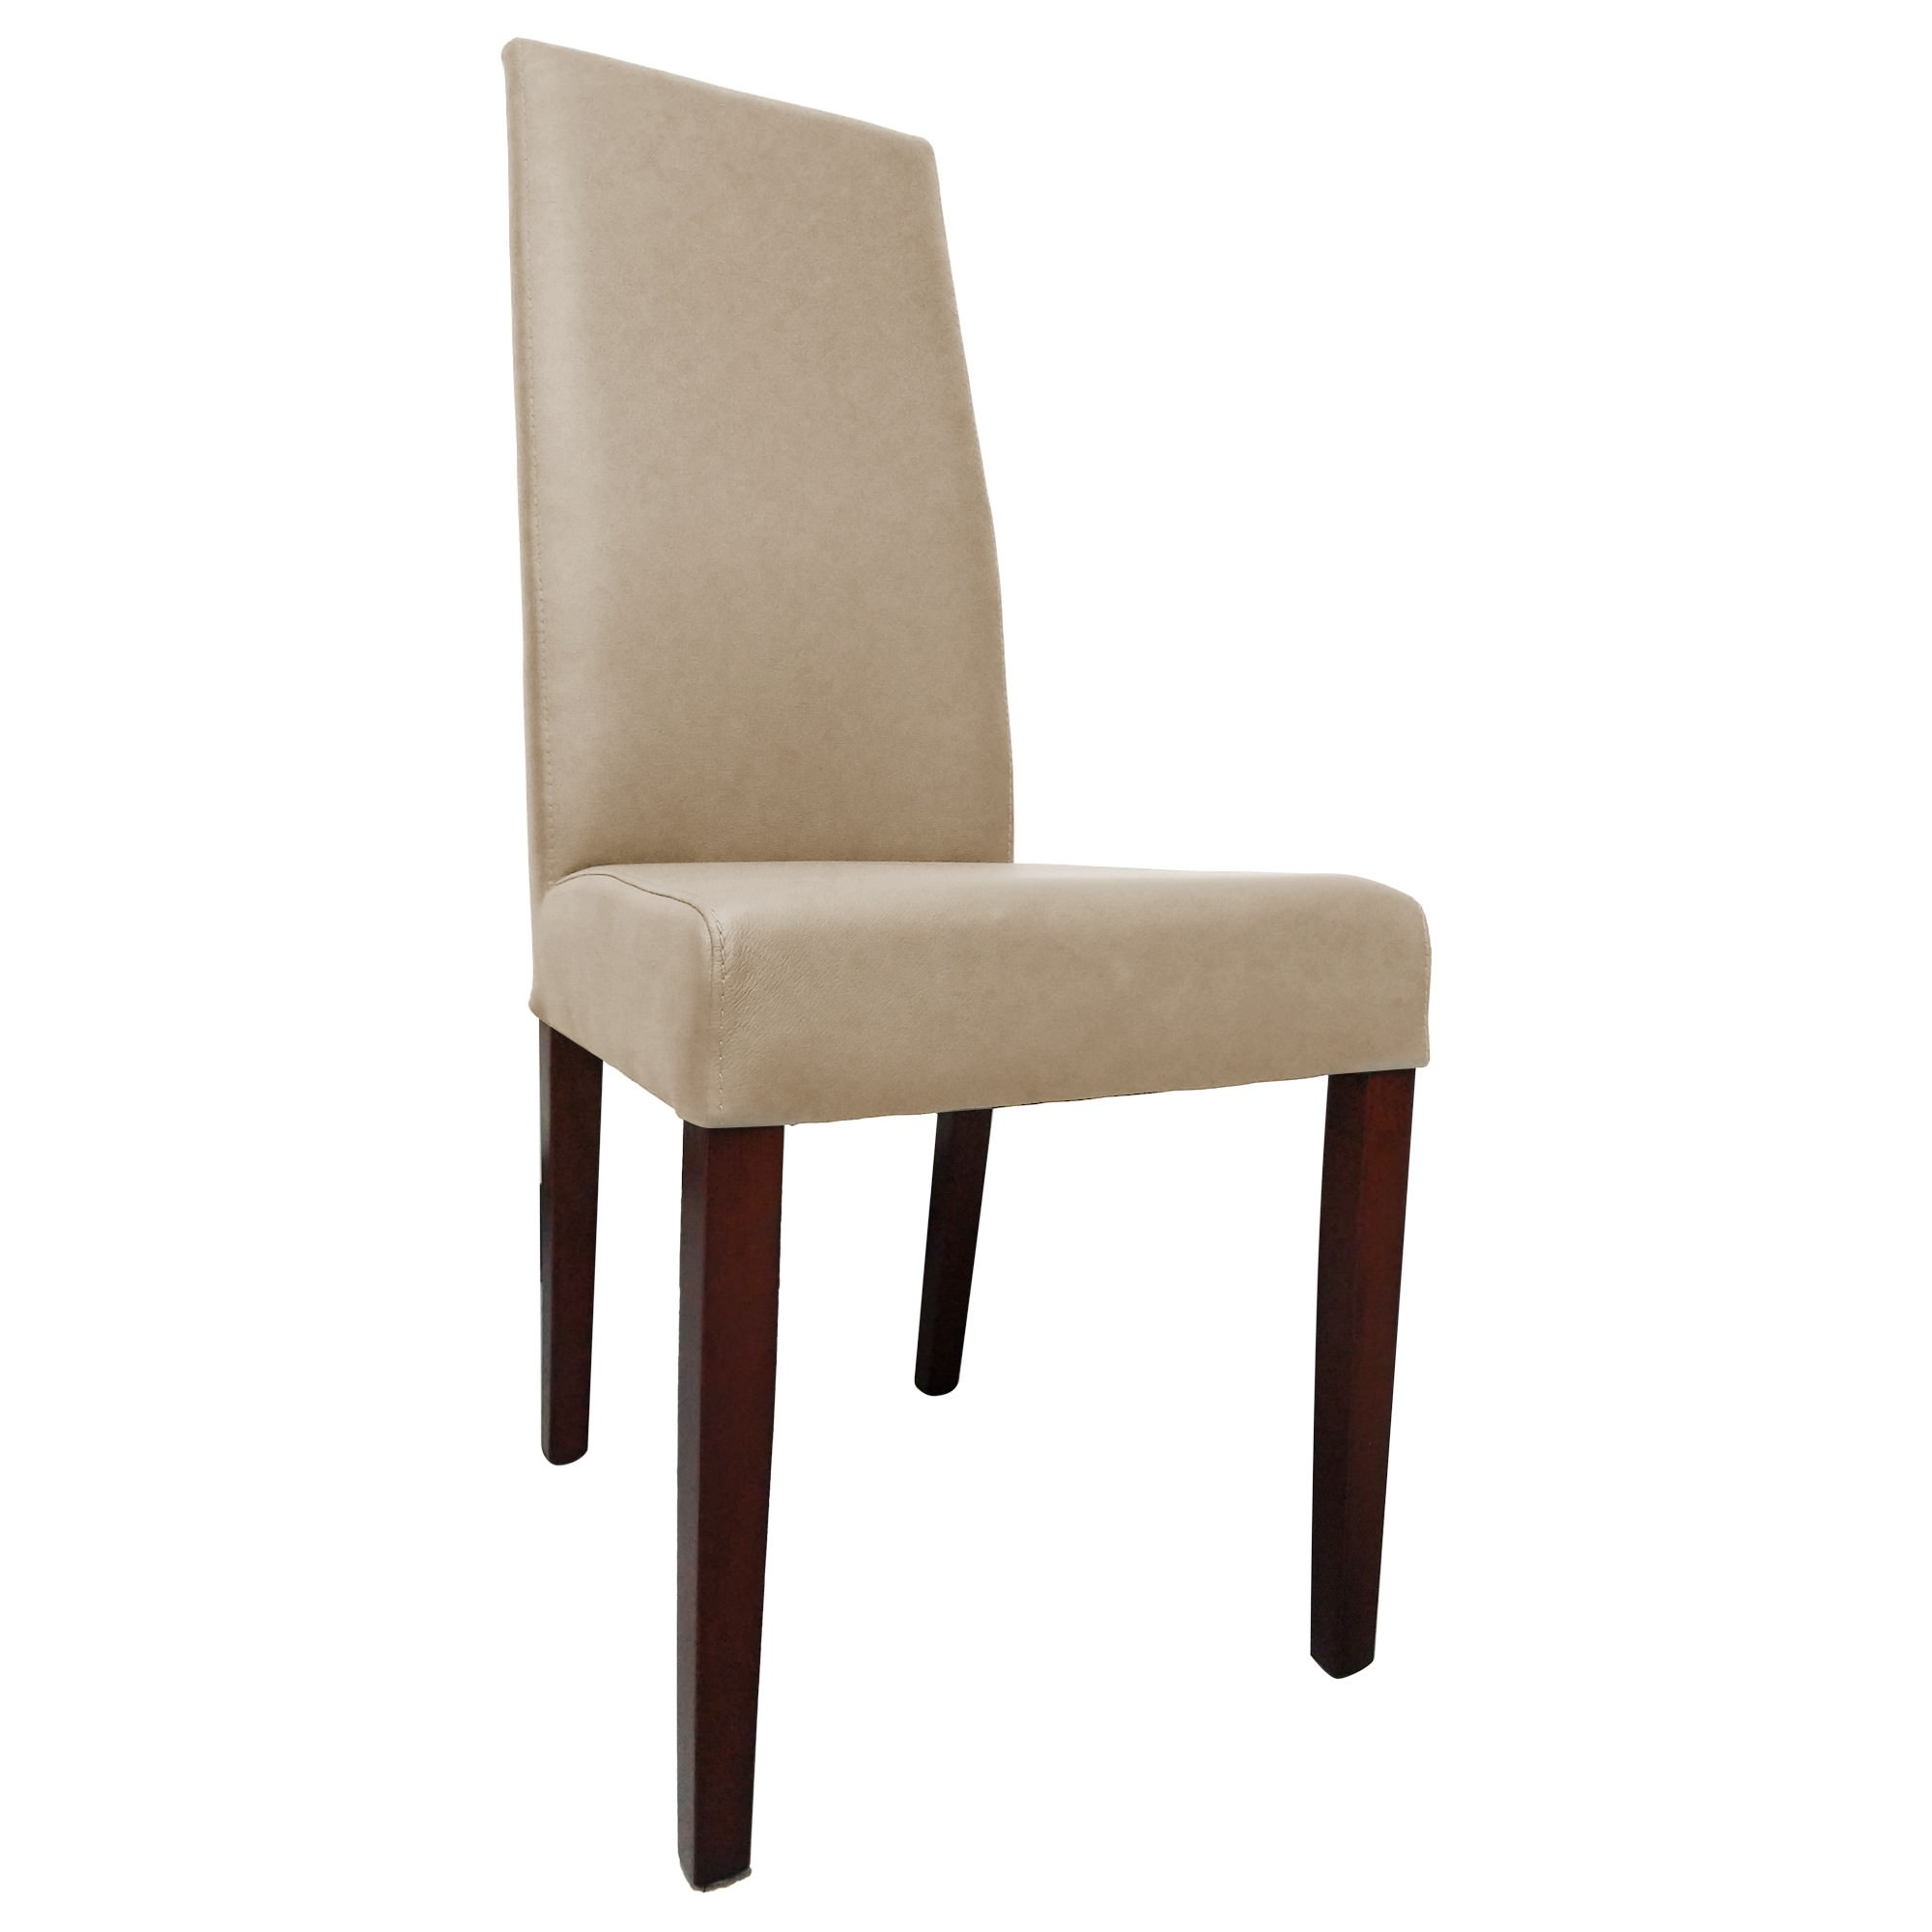 Wyatt Leather Dining Chair, Taupe